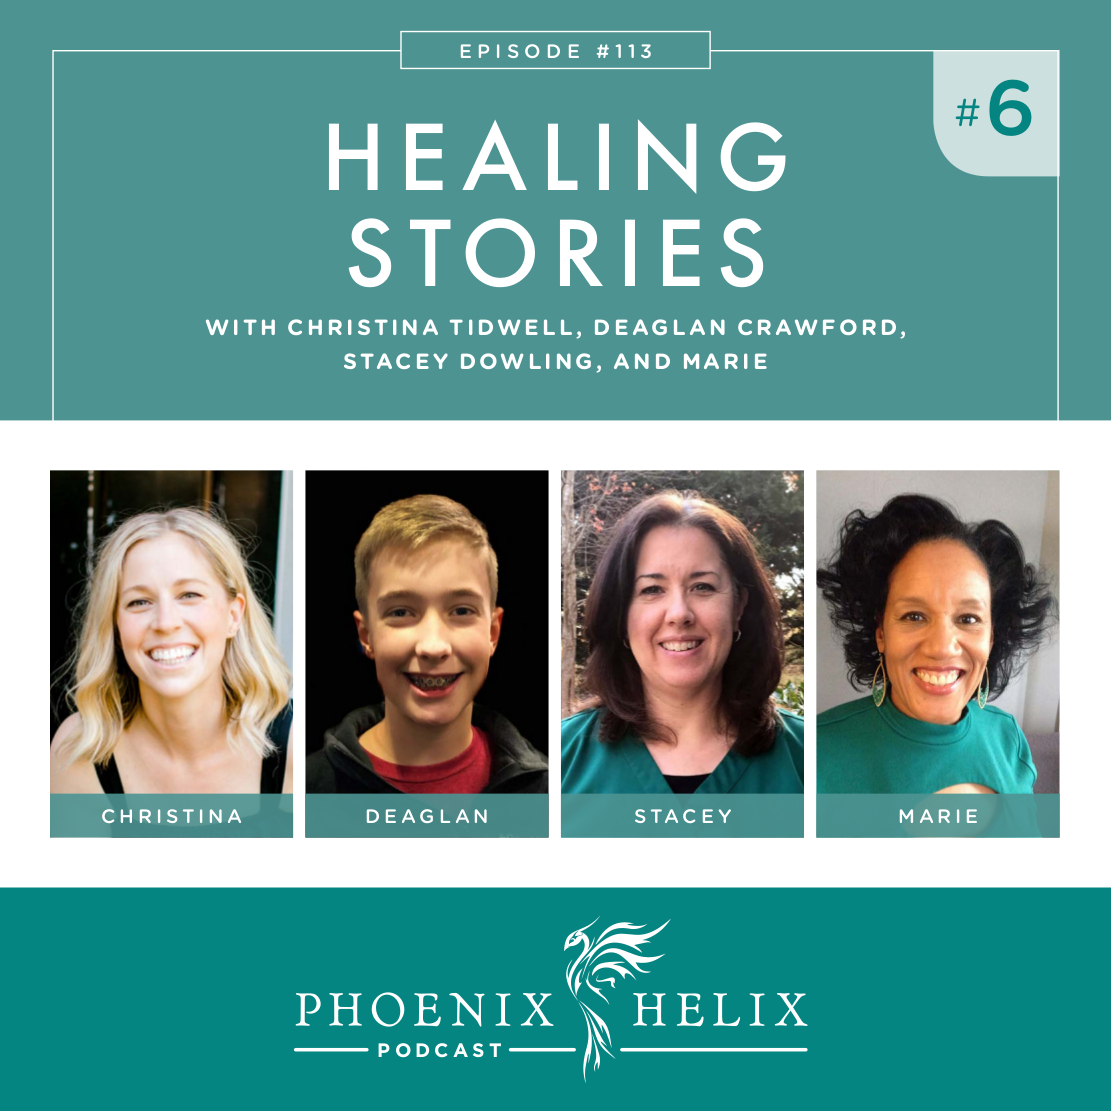 Autoimmune Healing Stories #6 | Phoenix Helix Podcast